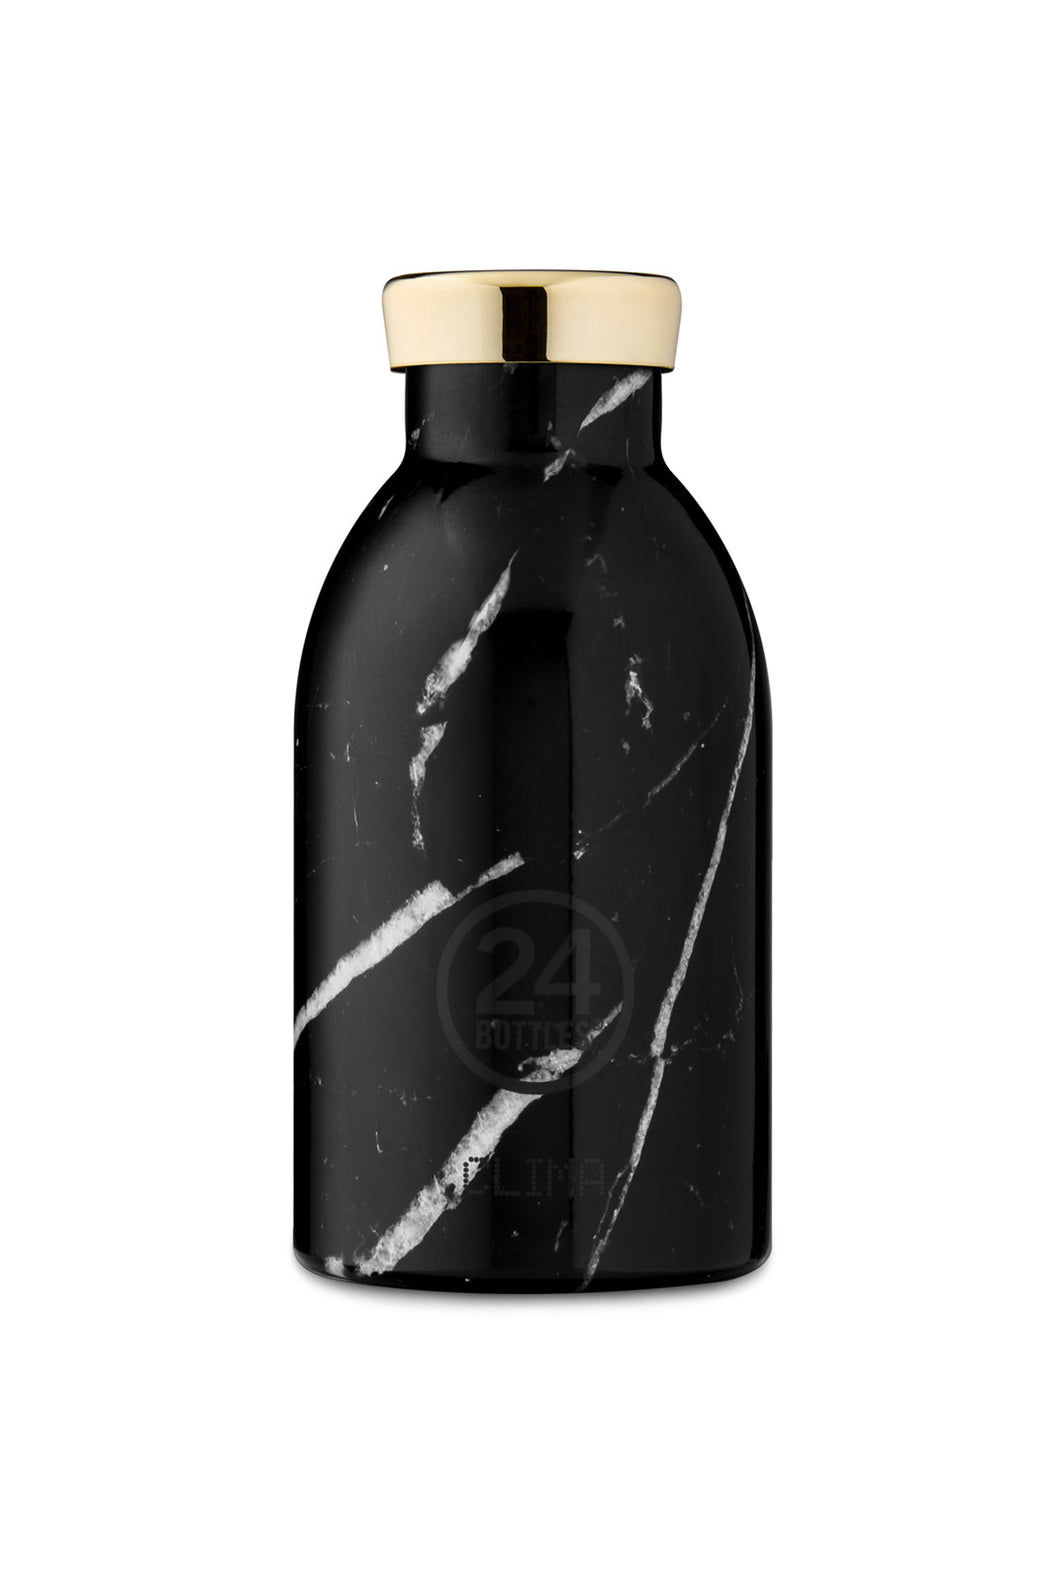 24Bottles - Grand Collection - Clima Bottle - Stainless Steel Drink Bottle - 330ml - Black Marble